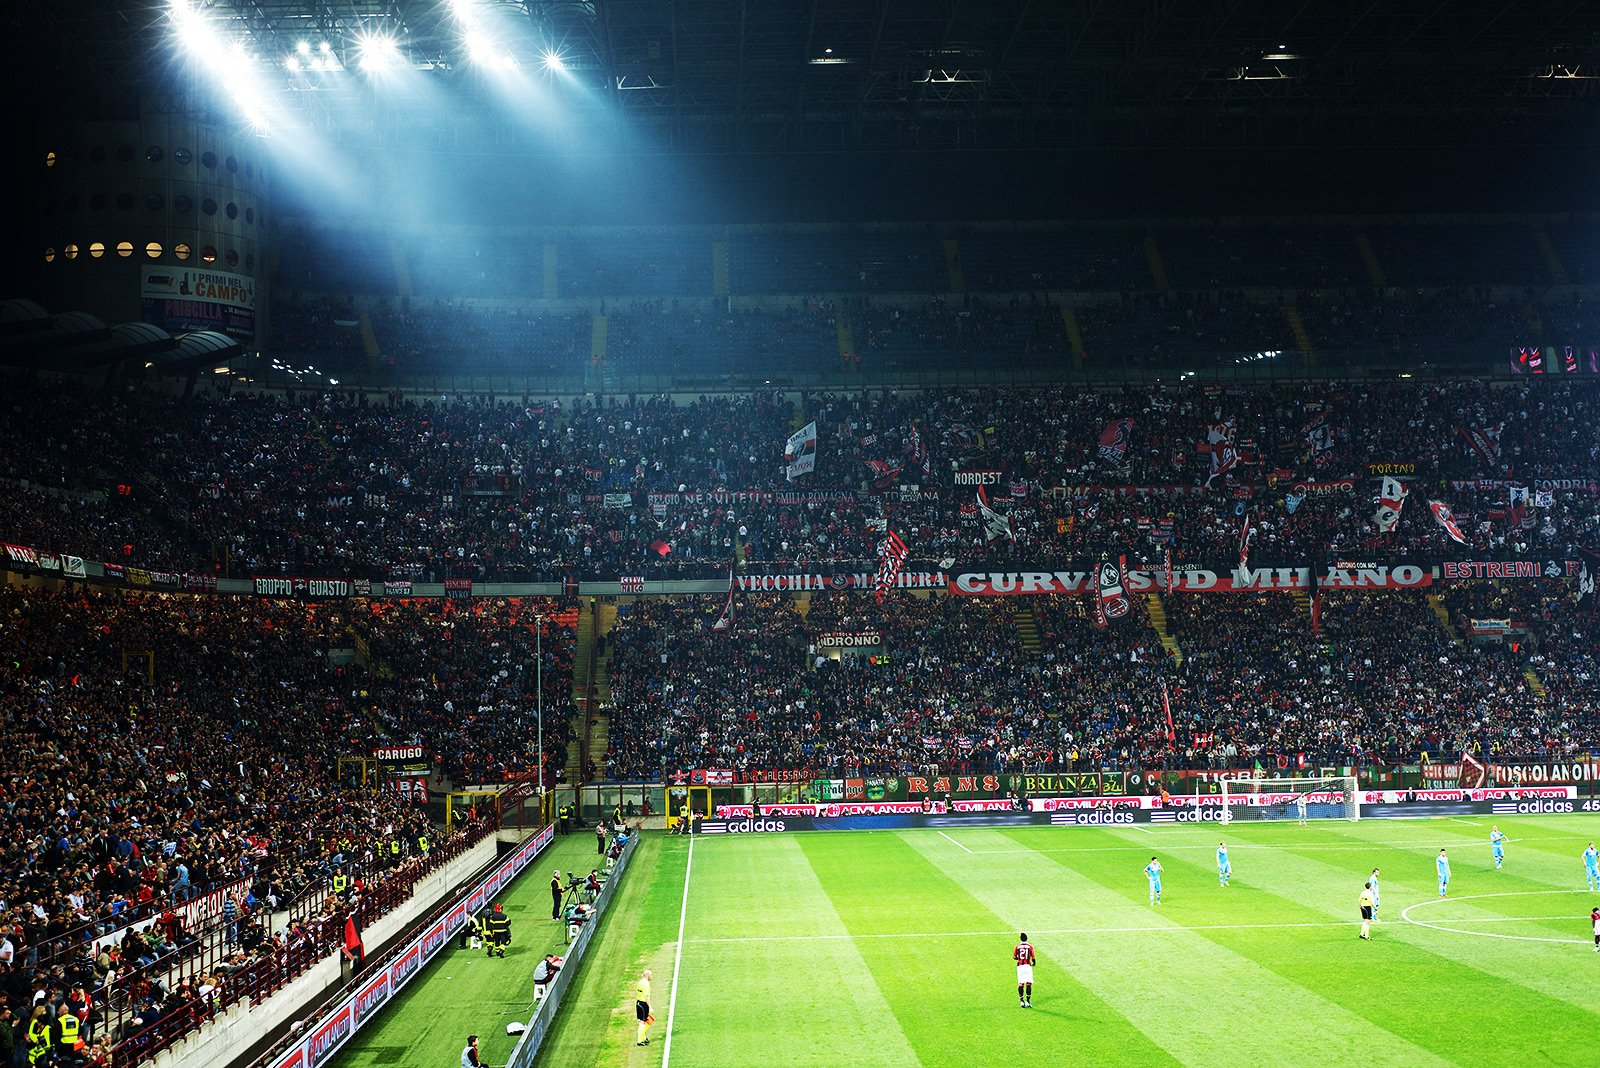 How to watch football at the San Siro stadium in Milan